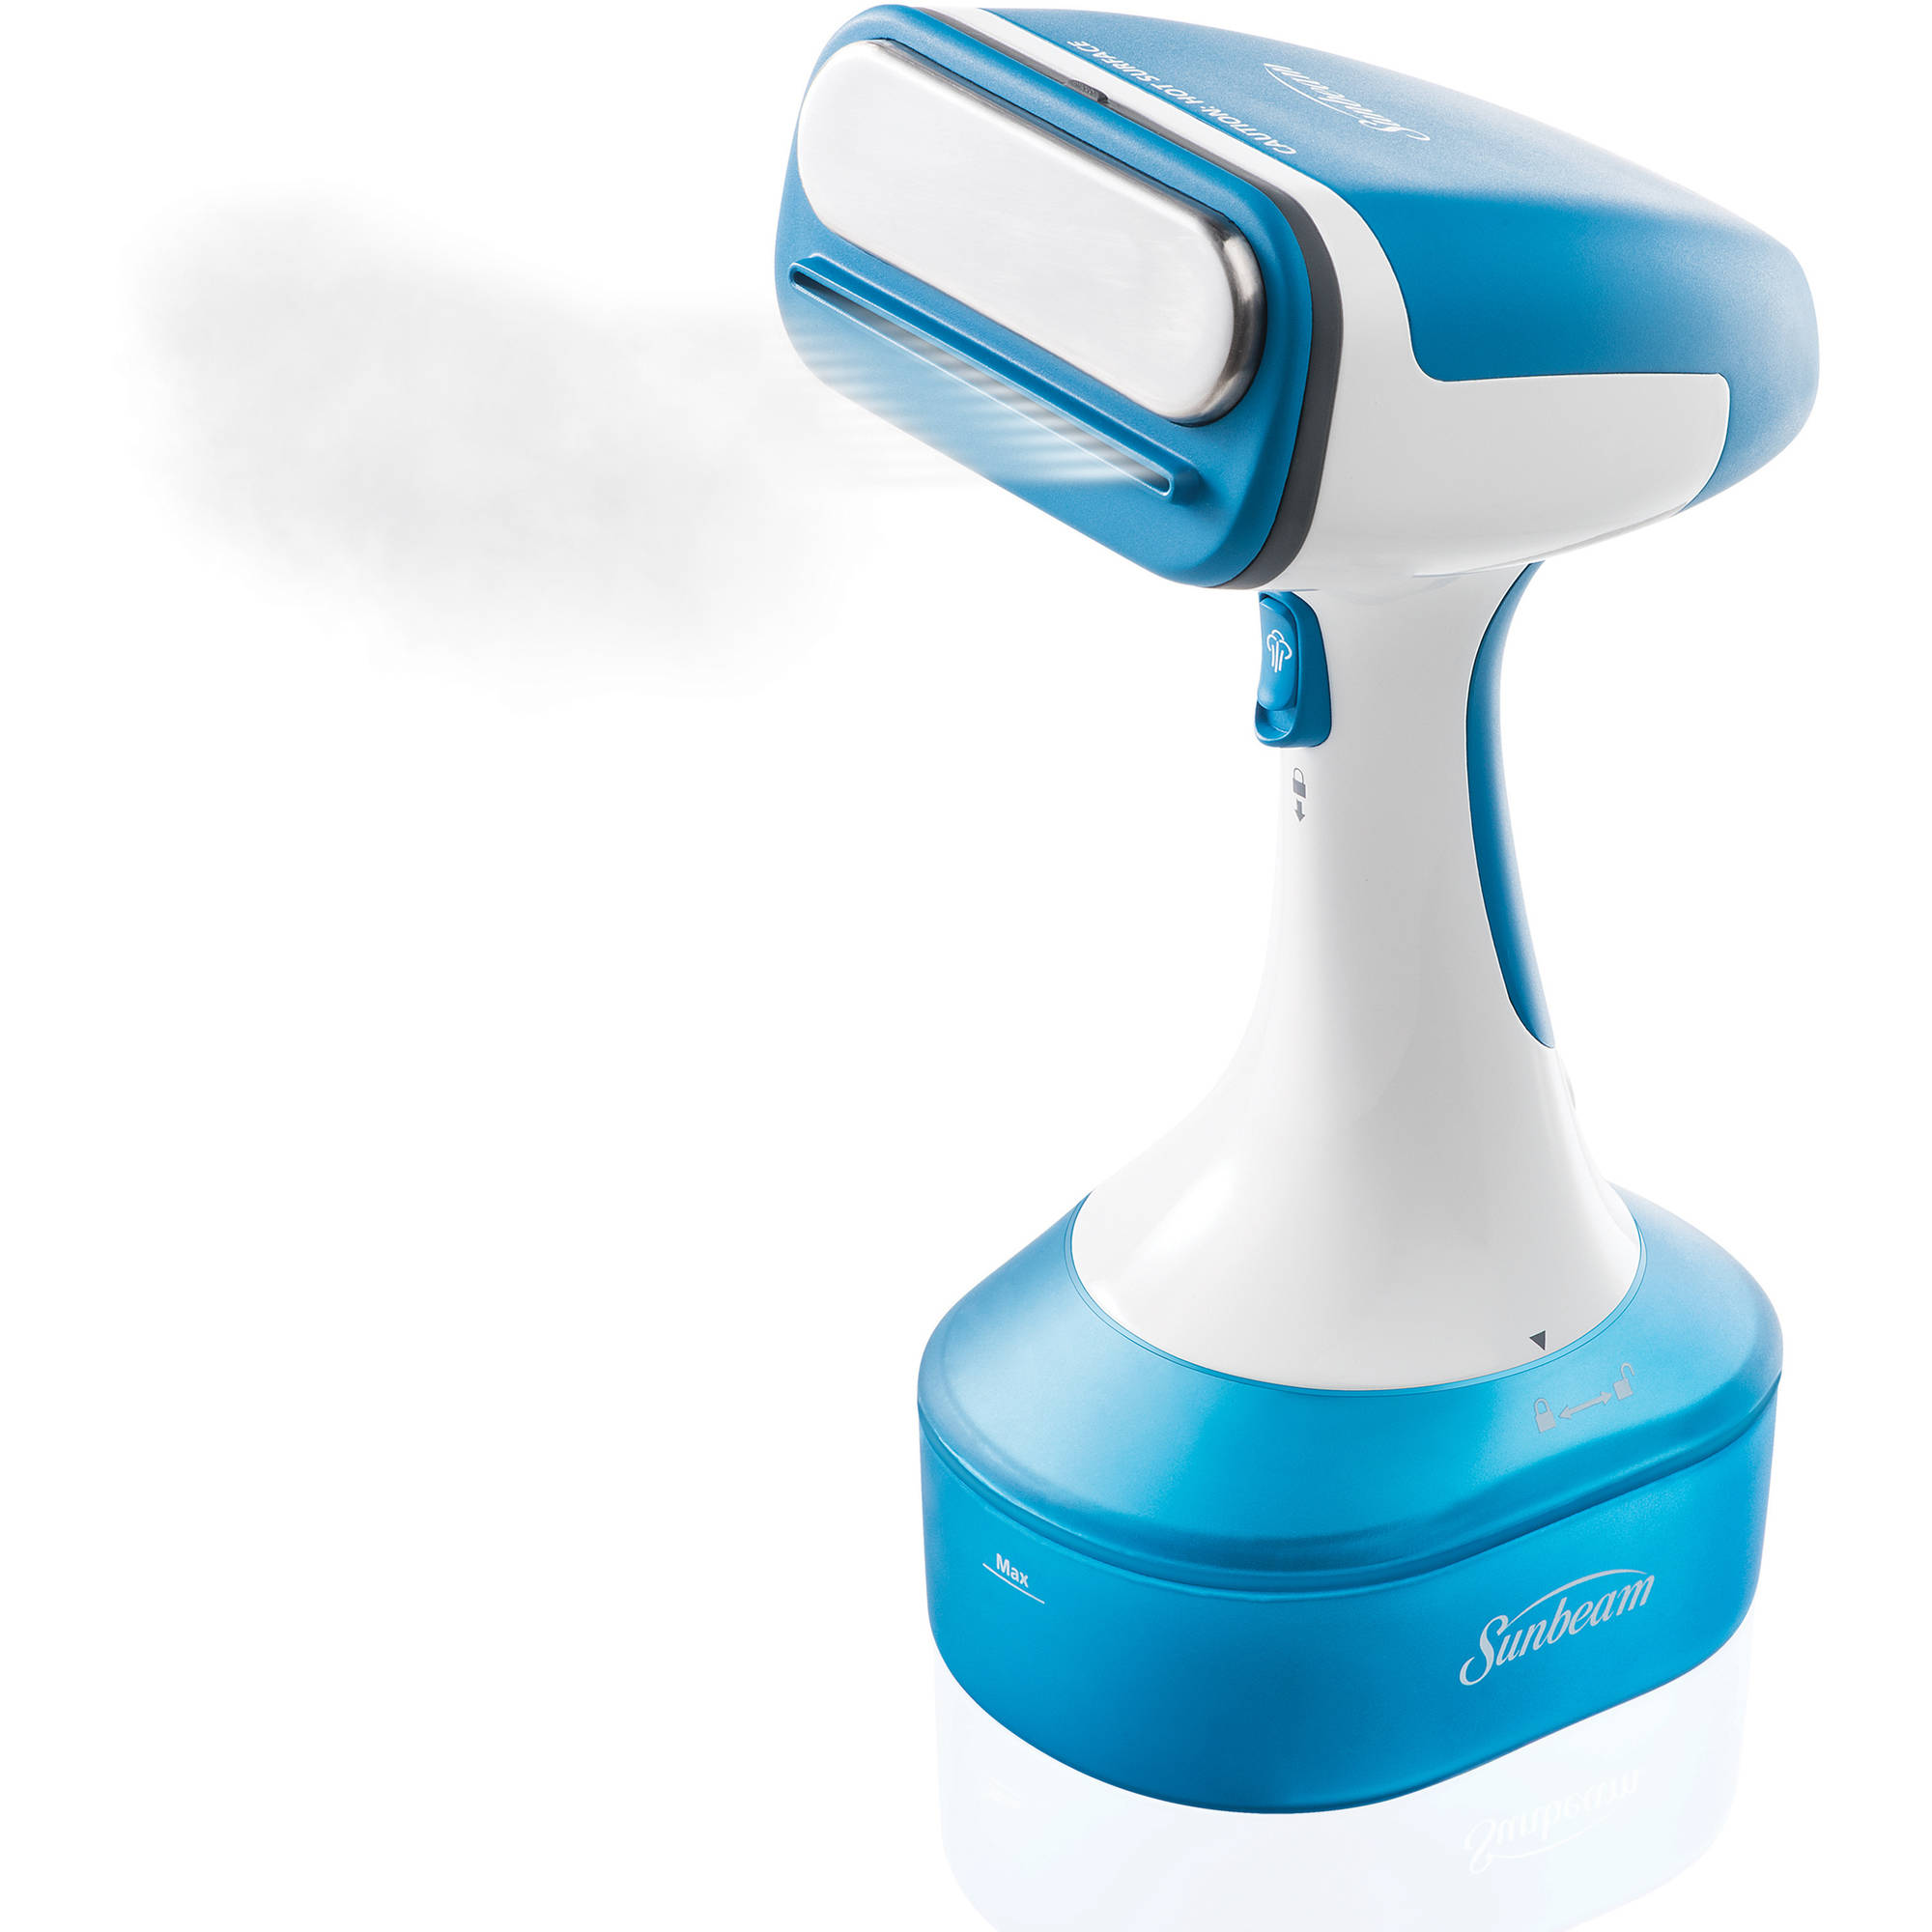 Sunbeam Hand Held Garment Steamer (GCSBHS-100-000)